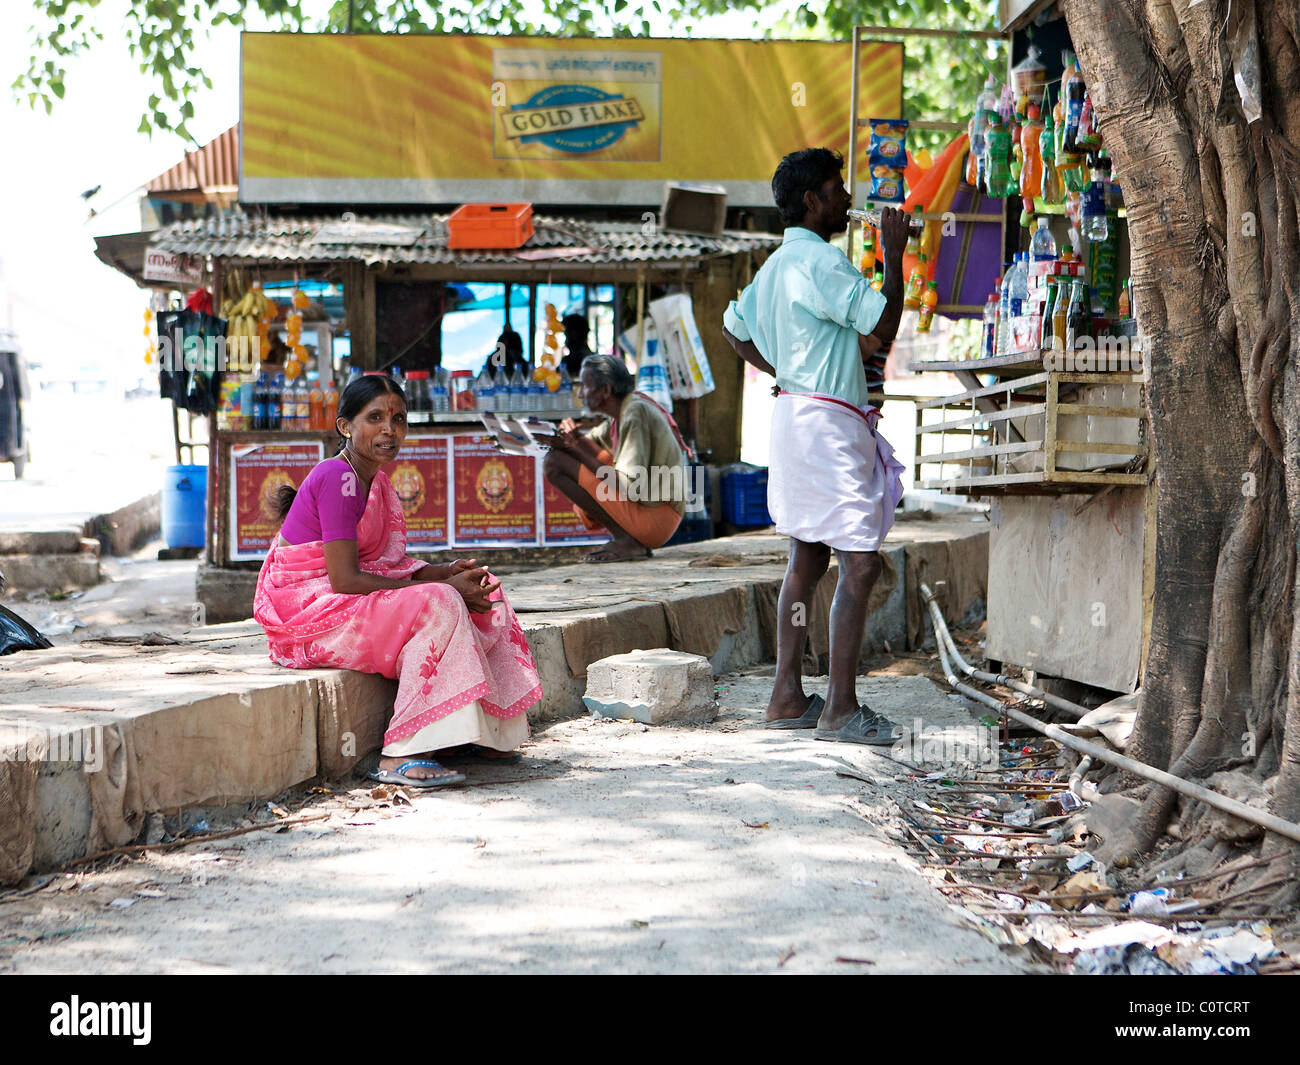 Street life in Fort Cochin, Kerala, India - Stock Image